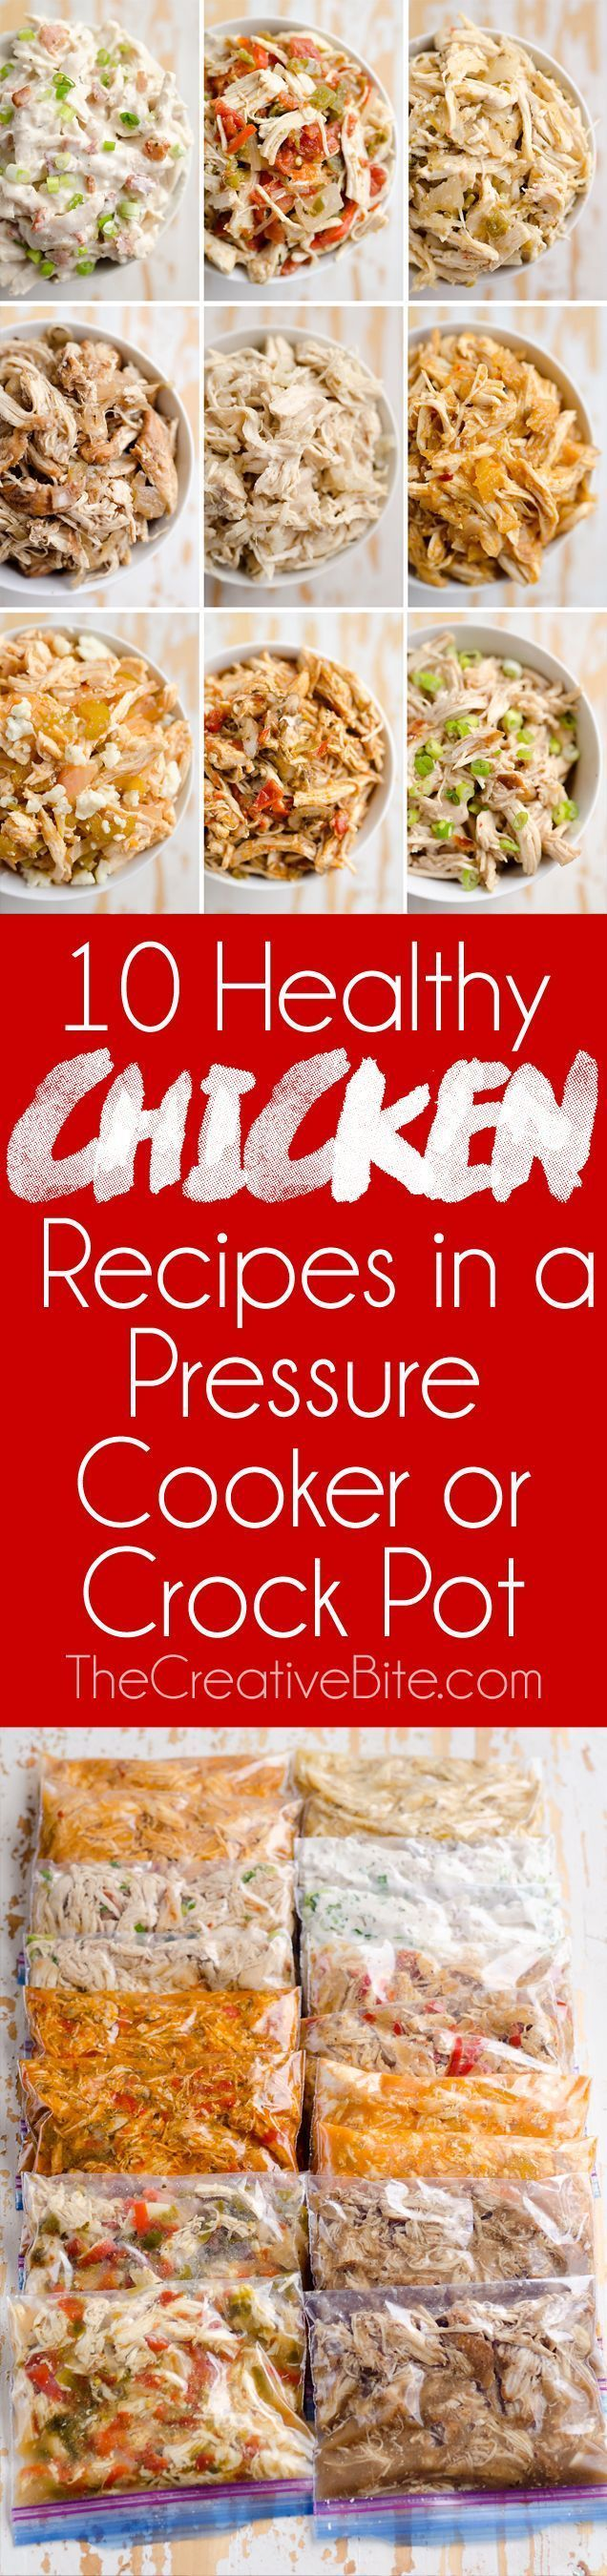 Try these 10 Healthy Chicken Recipes in a Pressure Cooker or Crock Pot for juicy shredded chicken with a variety of bold flavors! These freezer friendly Instant Pot chicken recipes are great for healthy meal prepping. http://eatdojo.com/easy-healthy-chicken-recipes-quick-meals/